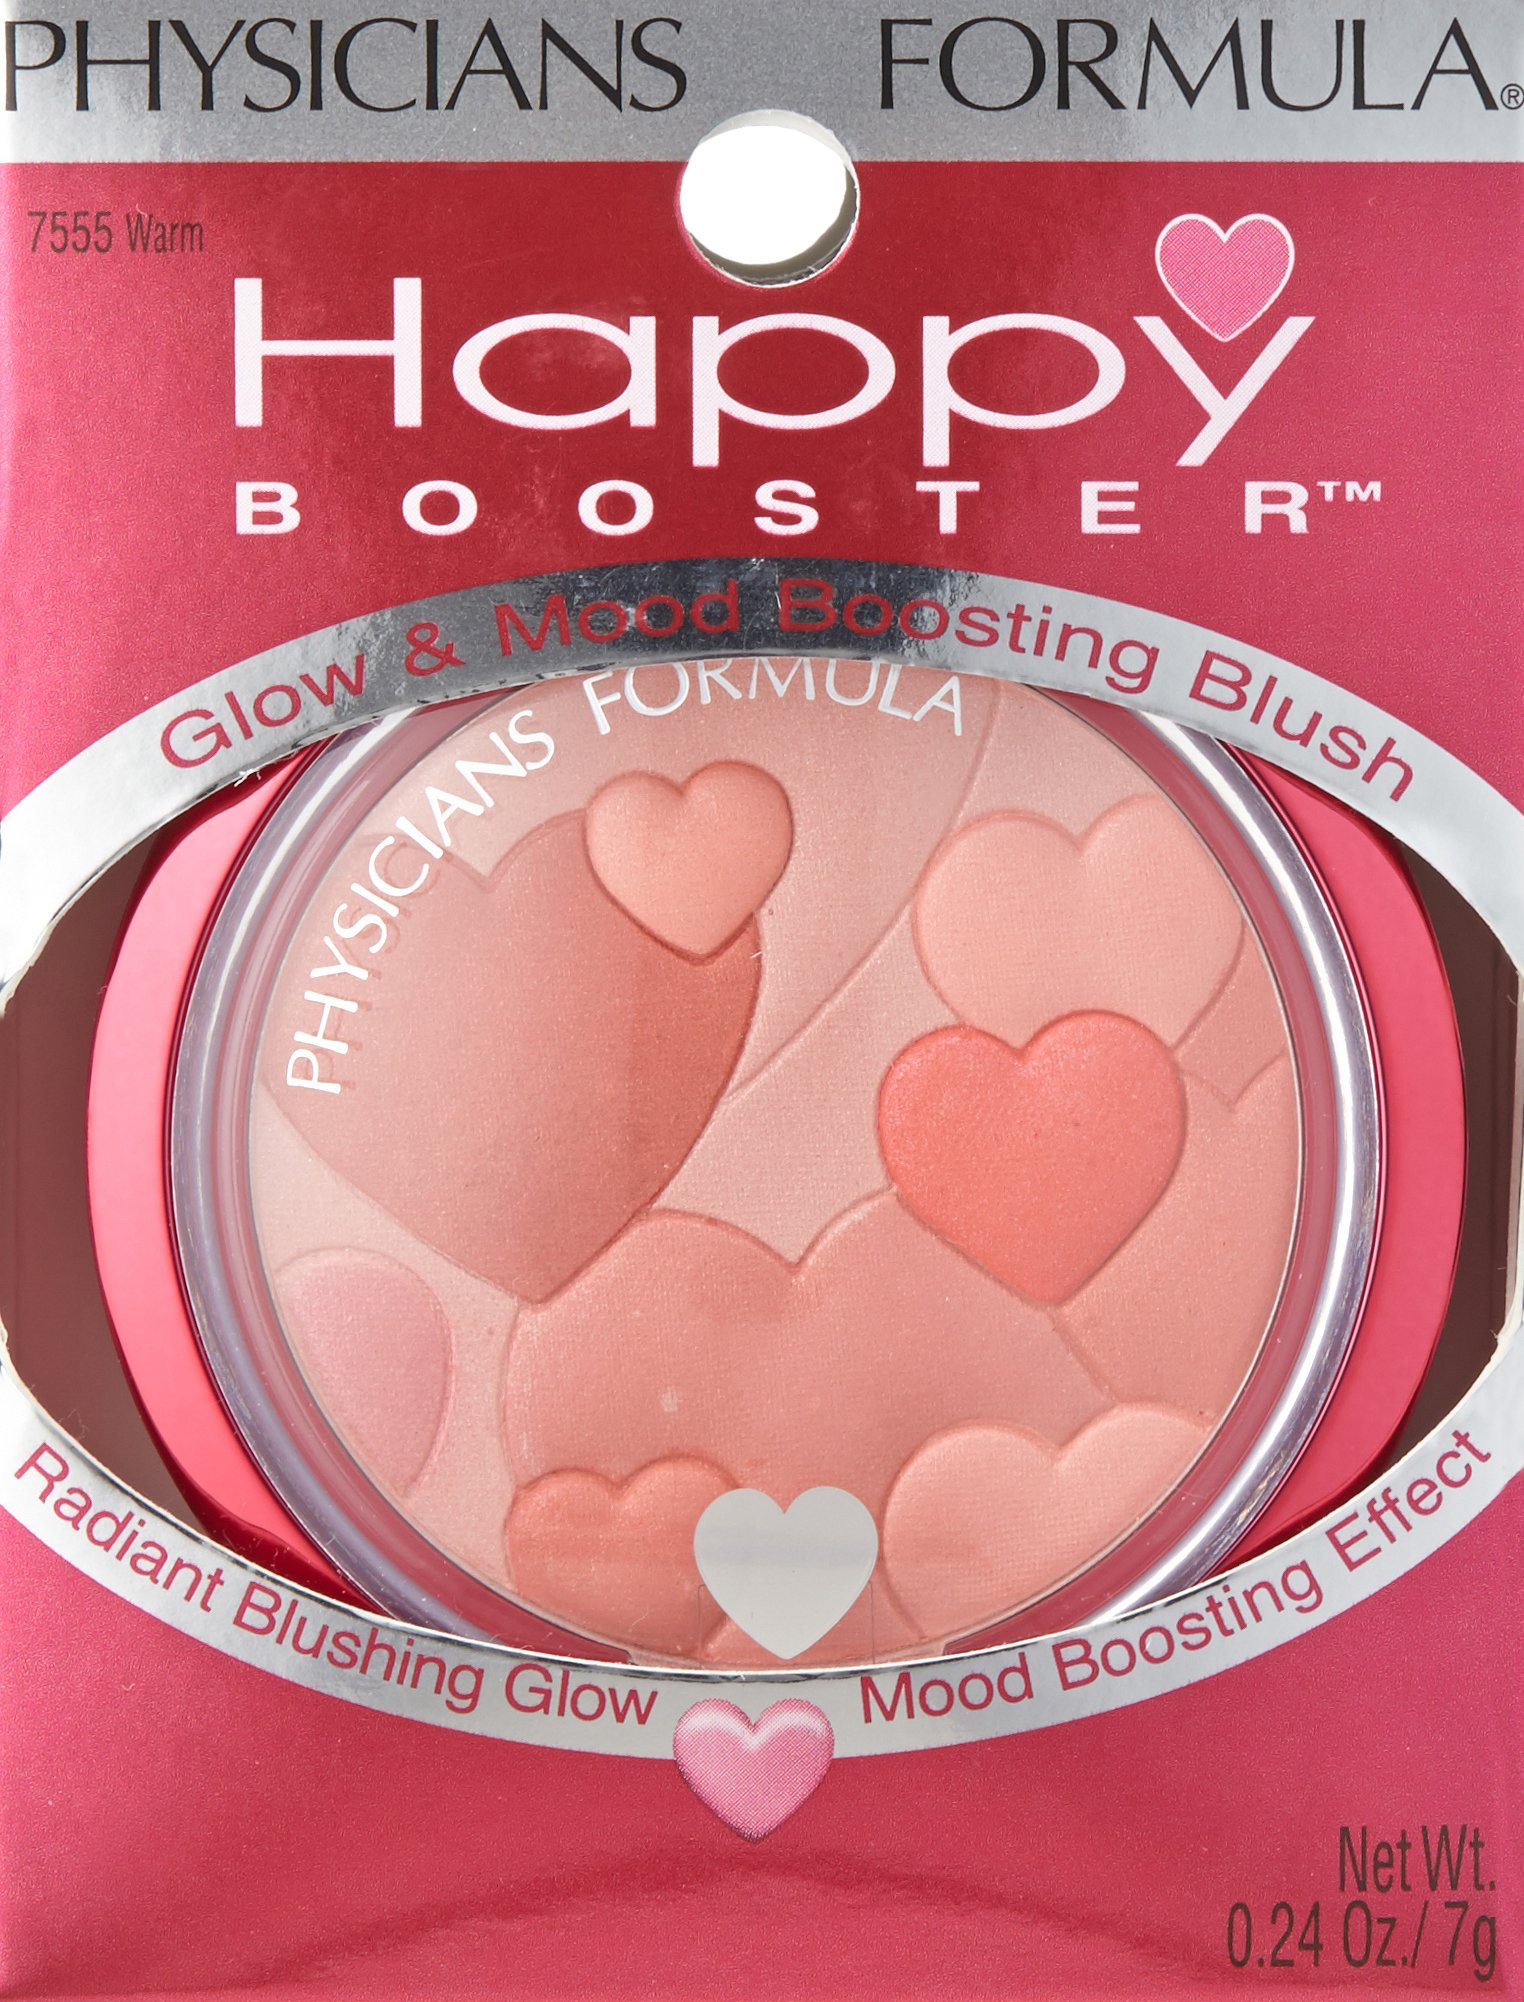 Physicians Formula Happy Booster Glow & Mood Boosting Blush, Warm, 0.24 Ounce by Physicians Formula (Image #4)